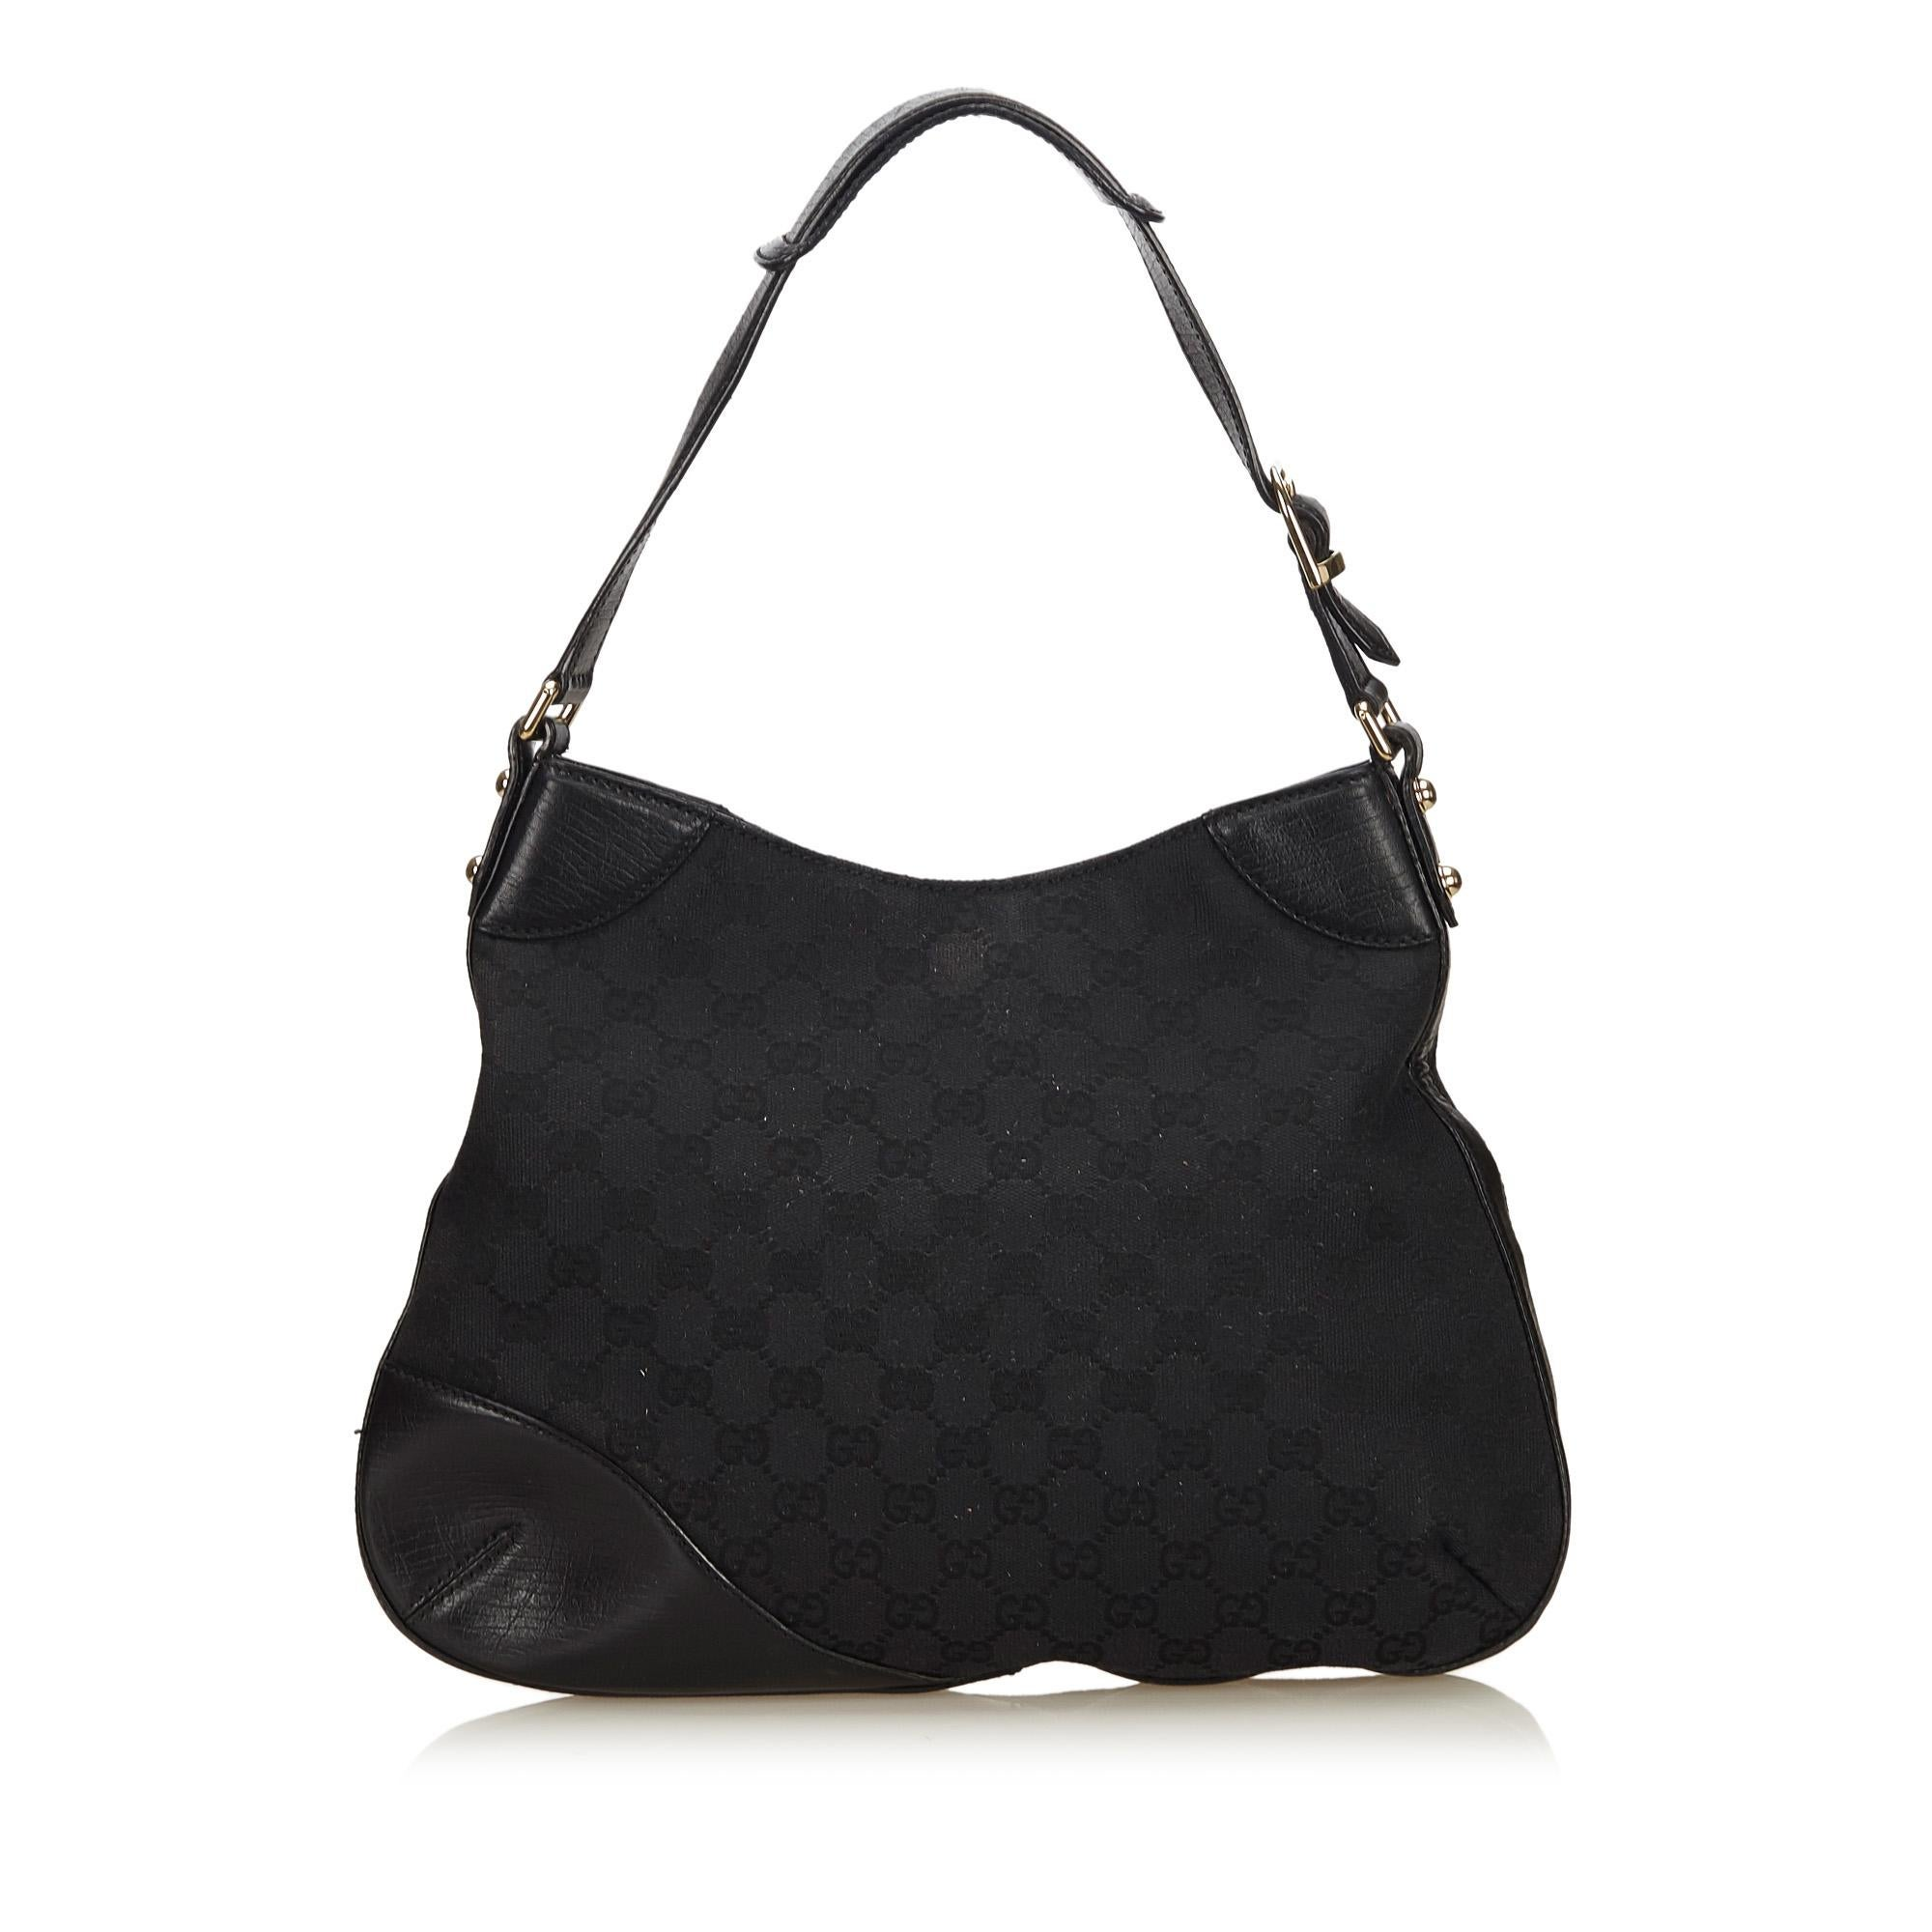 3c6717d97e38 Gucci Black Guccissima Jacquard Shoulder Bag For Sale at 1stdibs